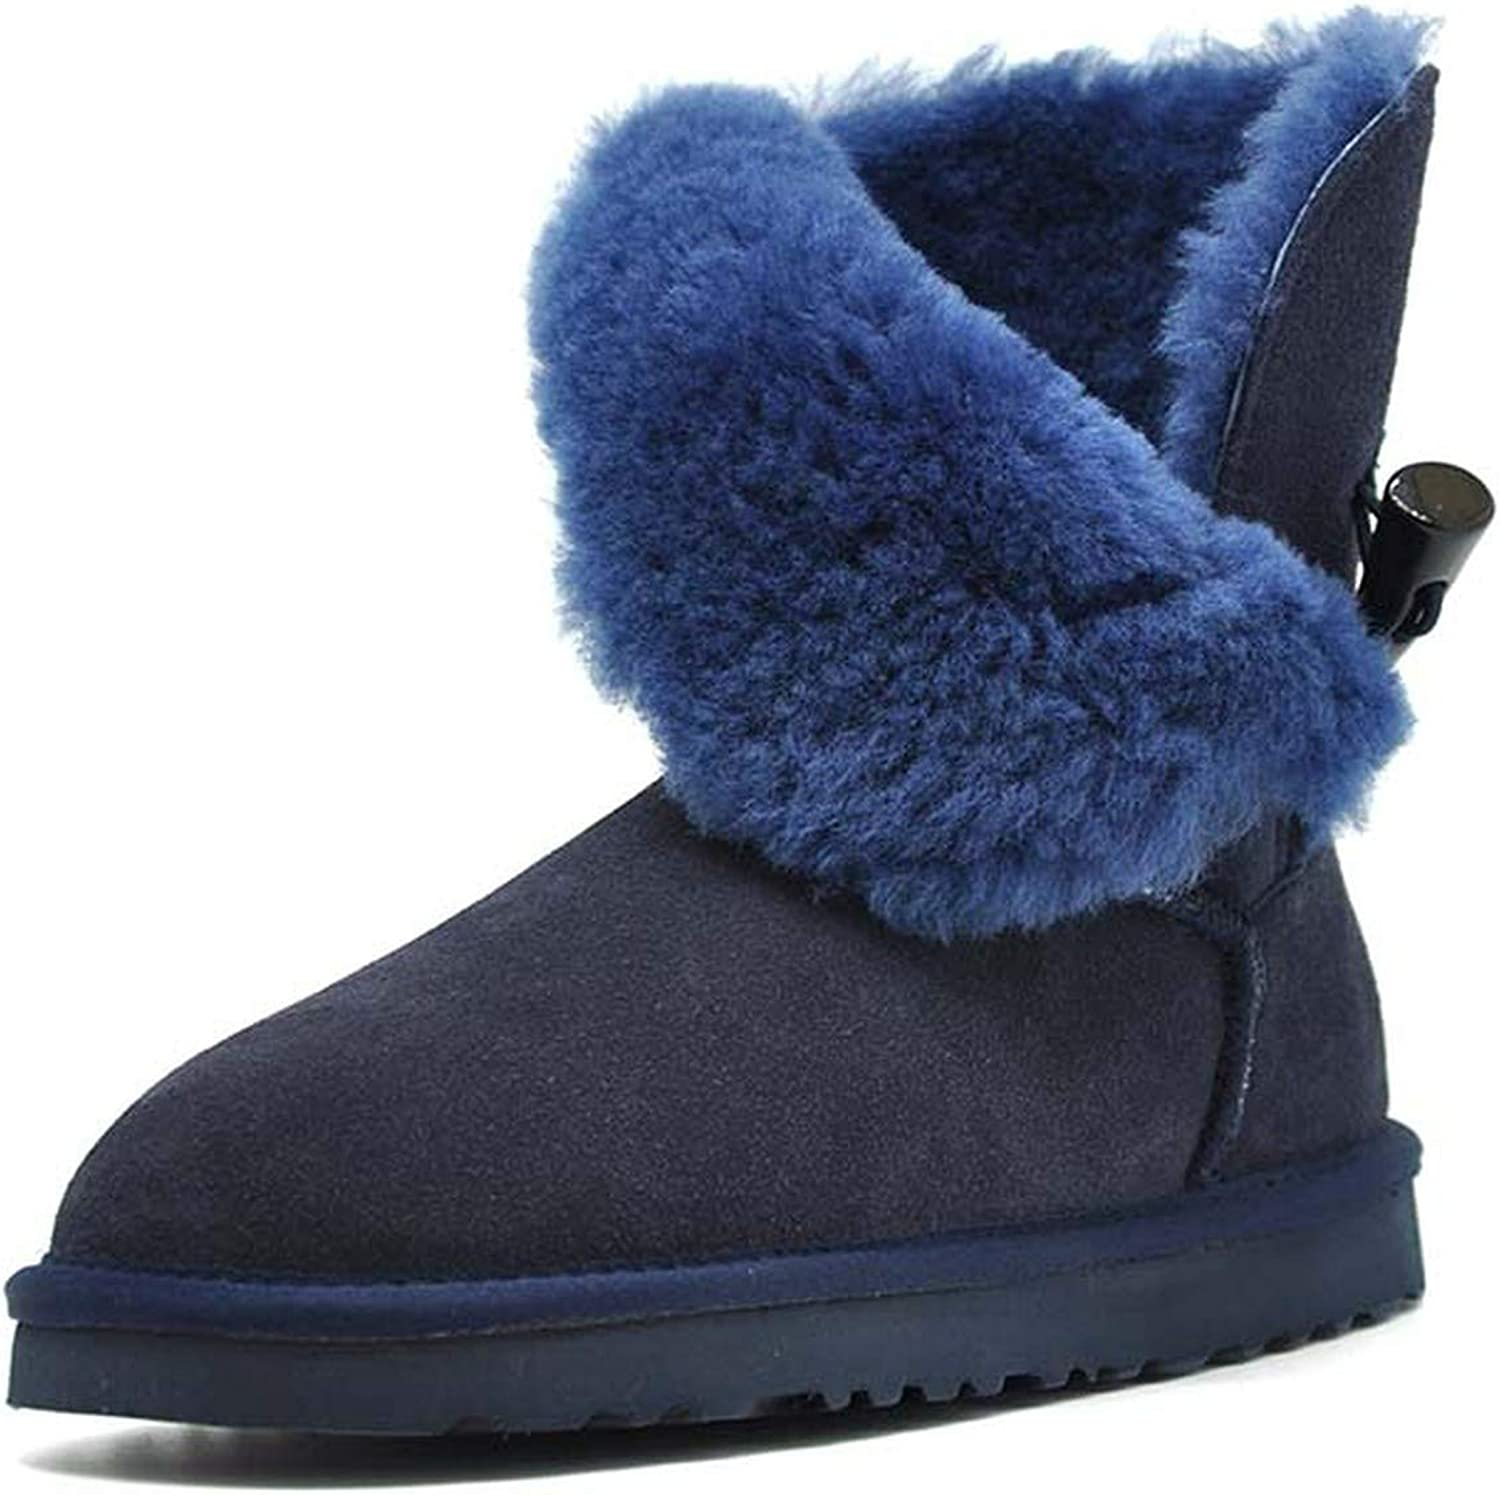 Crazy-shop 100% Real Fur Classic Waterproof Genuine Cowhide Leather Winter Snow Bootsfor Women